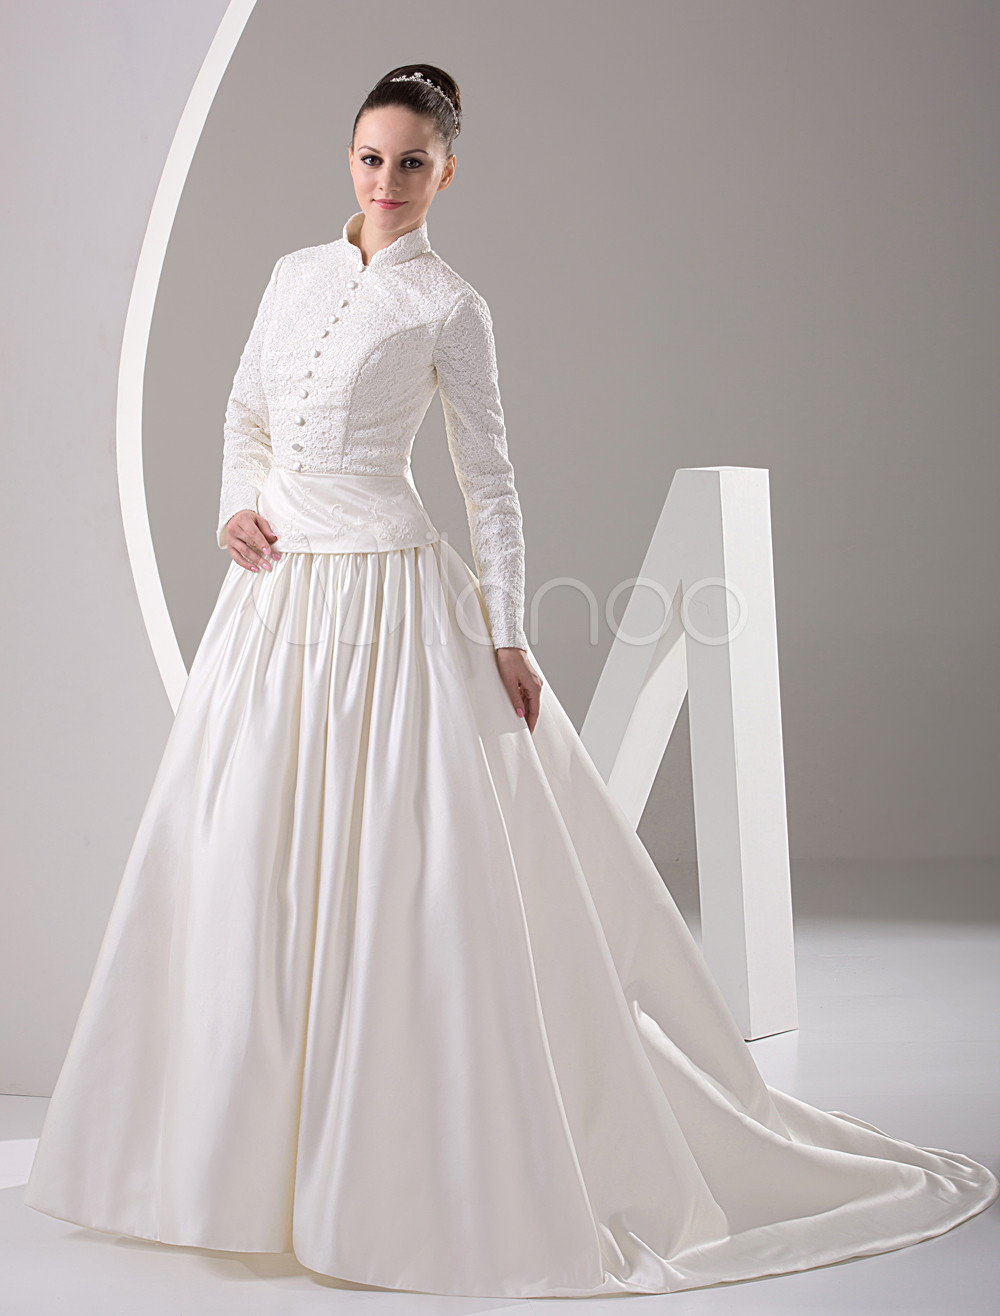 White Long Sleeves Beading Satin Muslim Wedding Dress - Milanoo.com